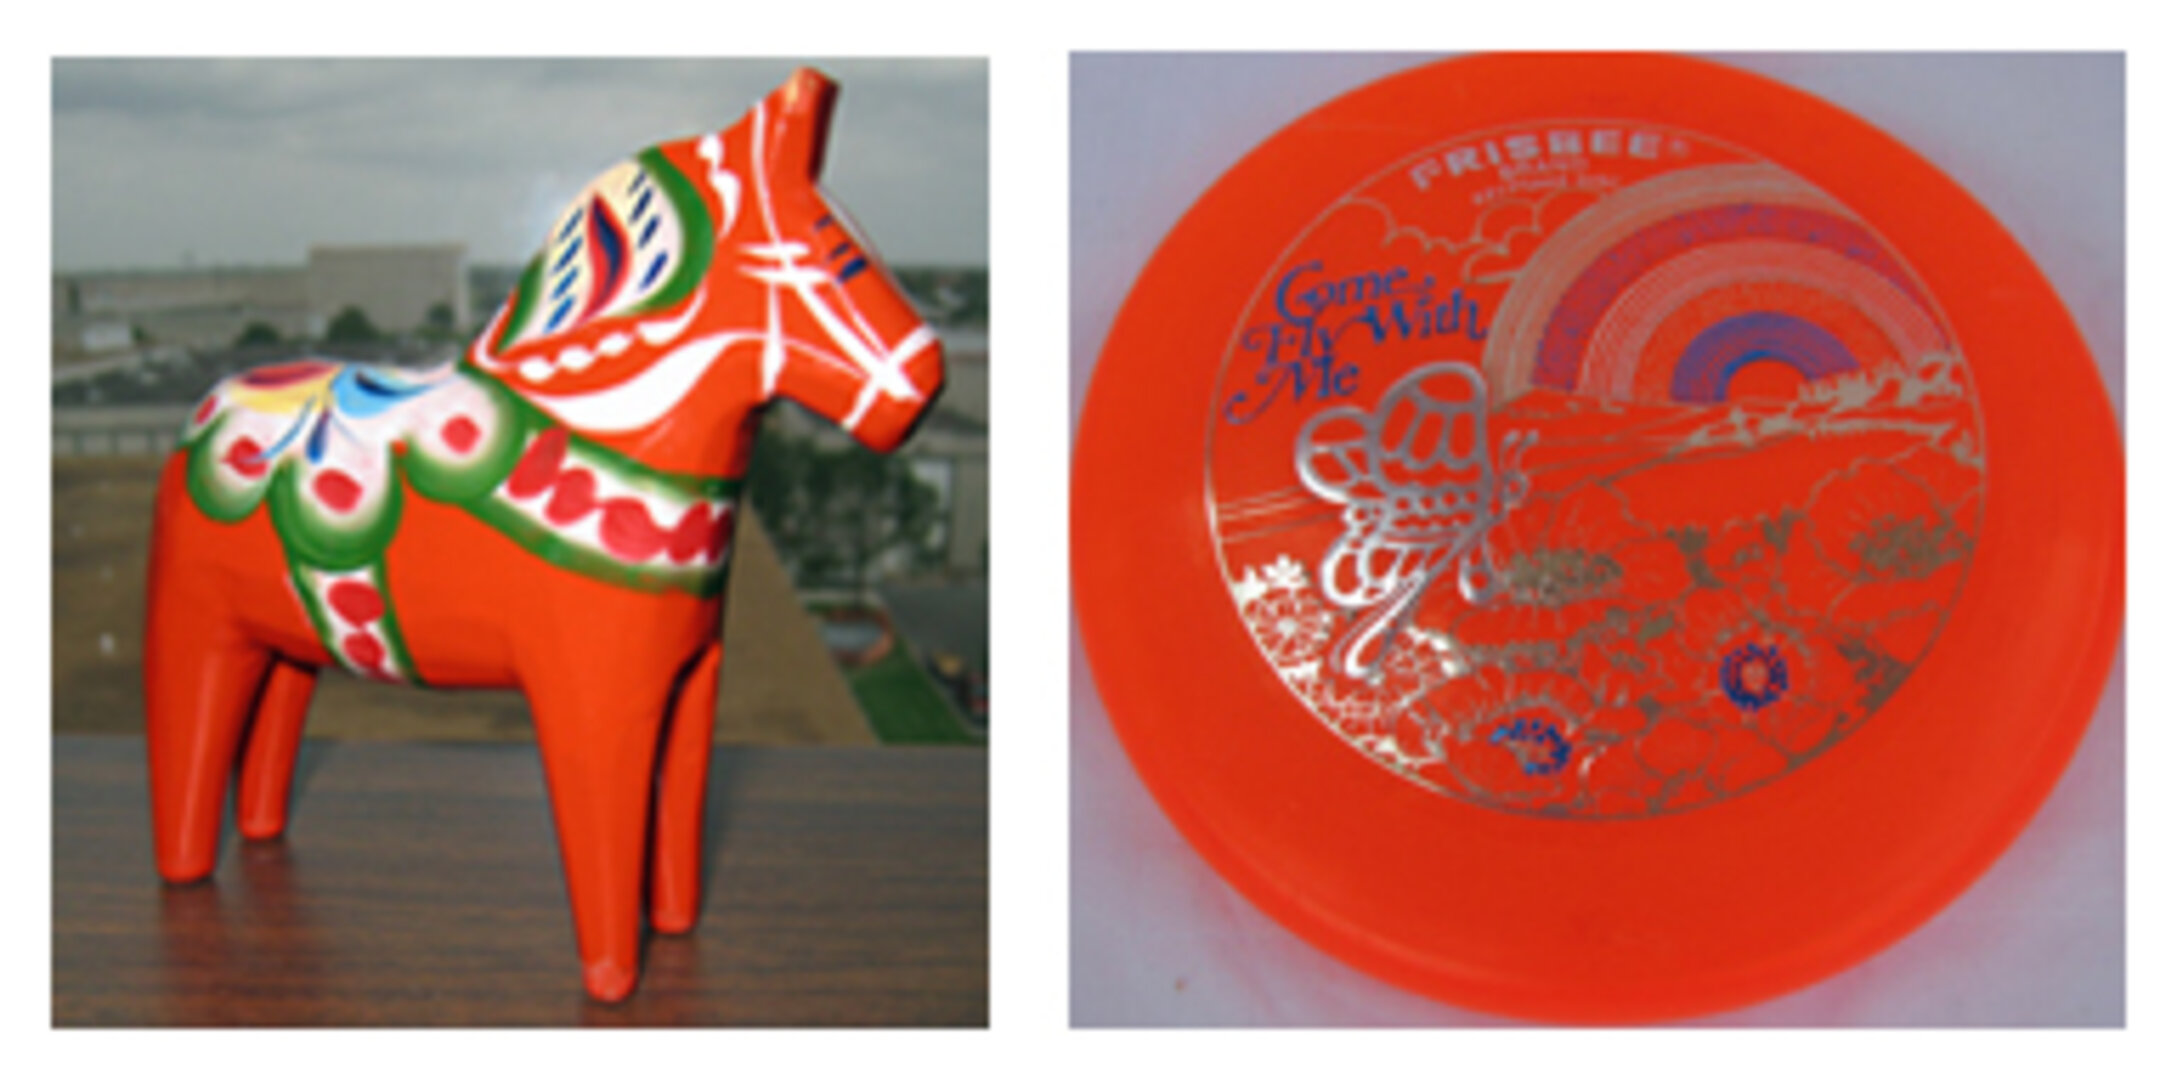 Other items include a Dalecarlia horse and a mini frisbee